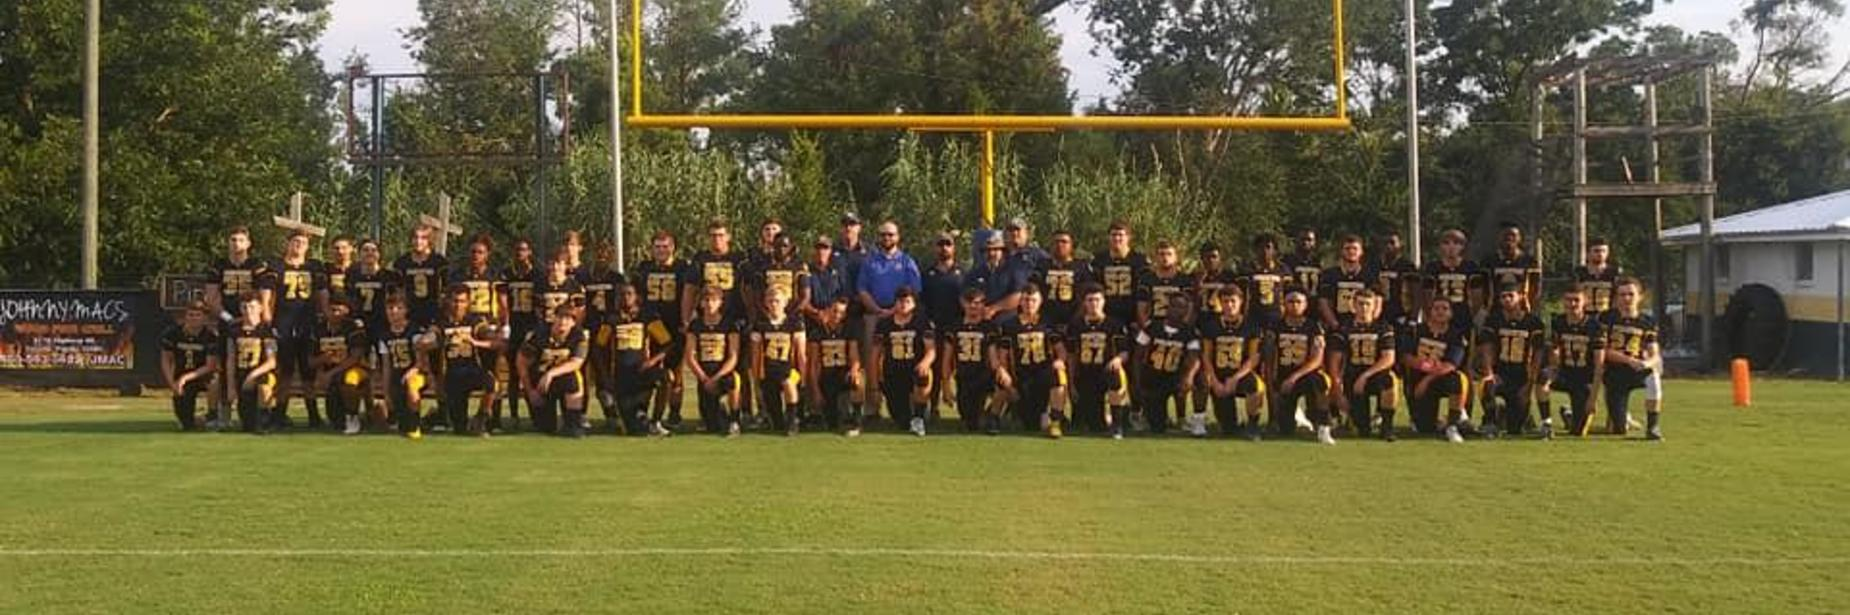 2019 Pirate Football Team